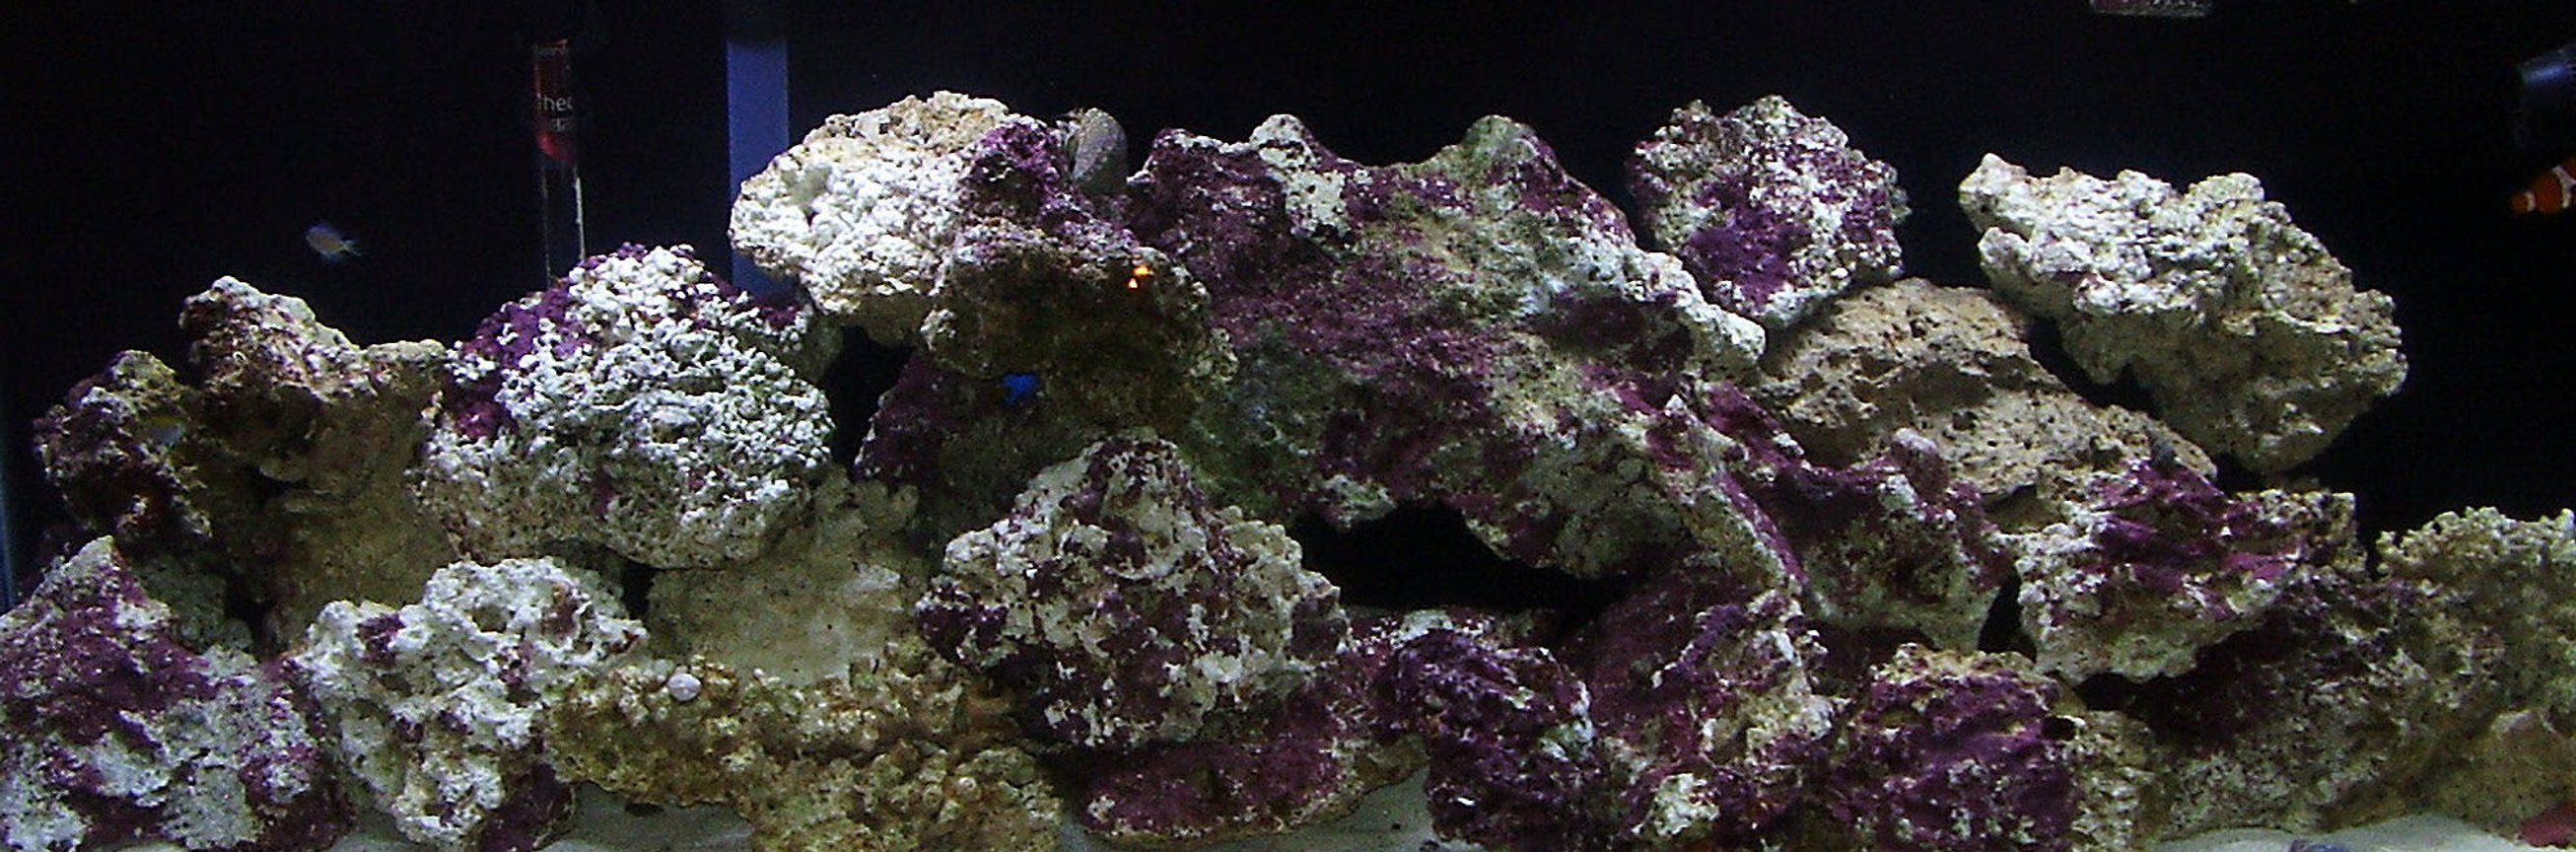 55 gallons reef tank (mostly live coral and fish) - Our new tank